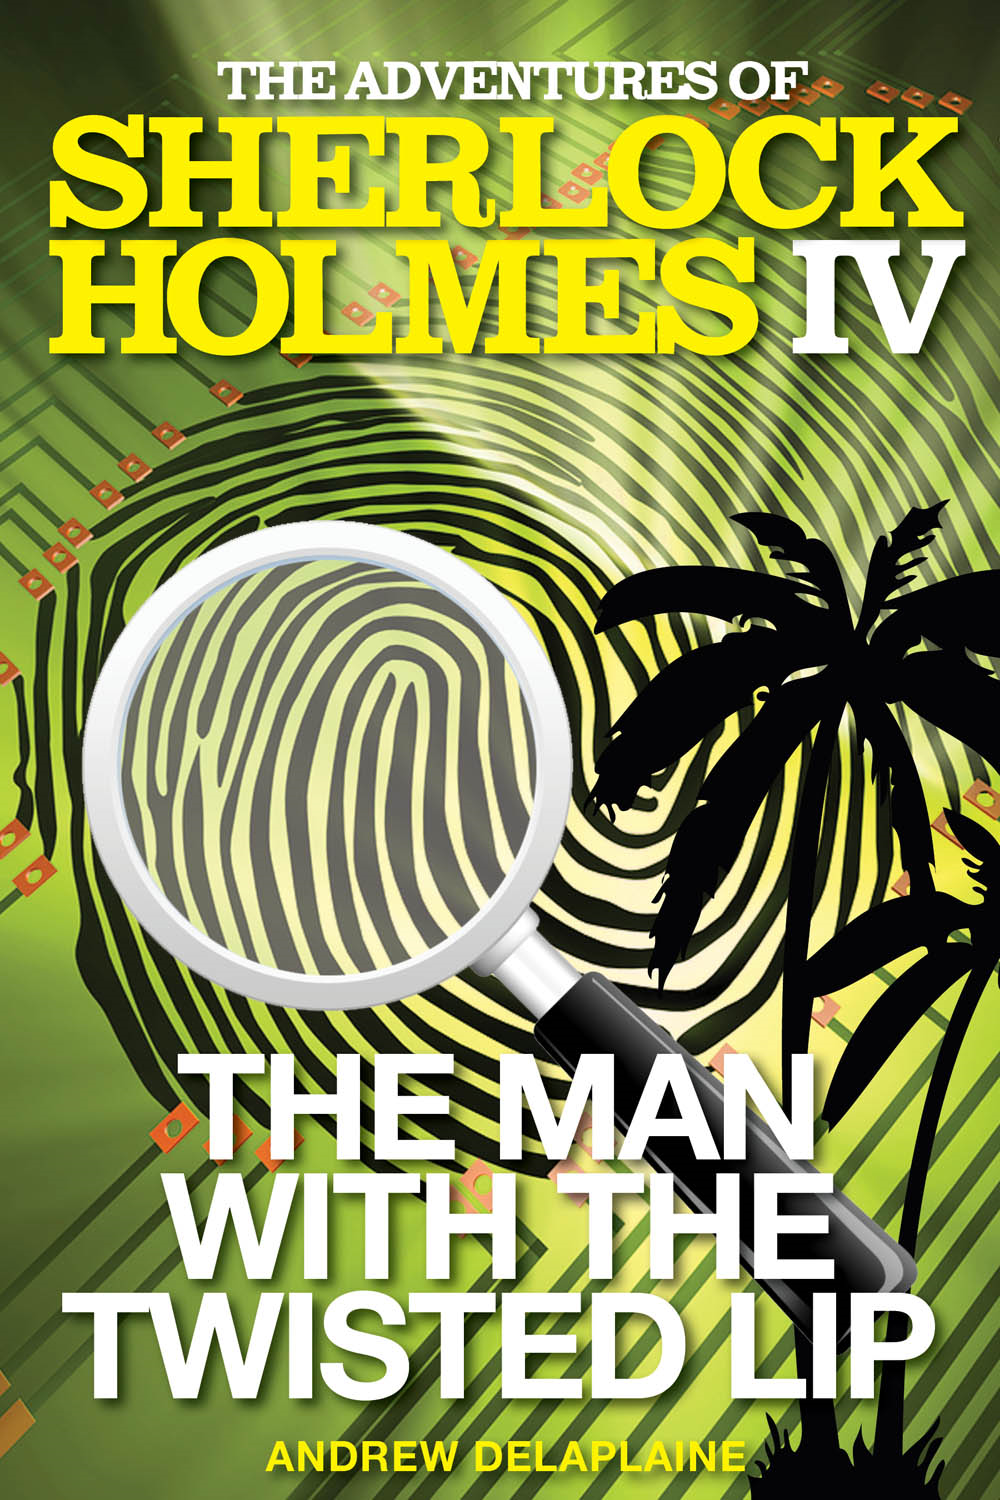 The Man with the Twisted Lip (The Adventures of Sherlock Holmes IV) By: Andrew Delaplaine